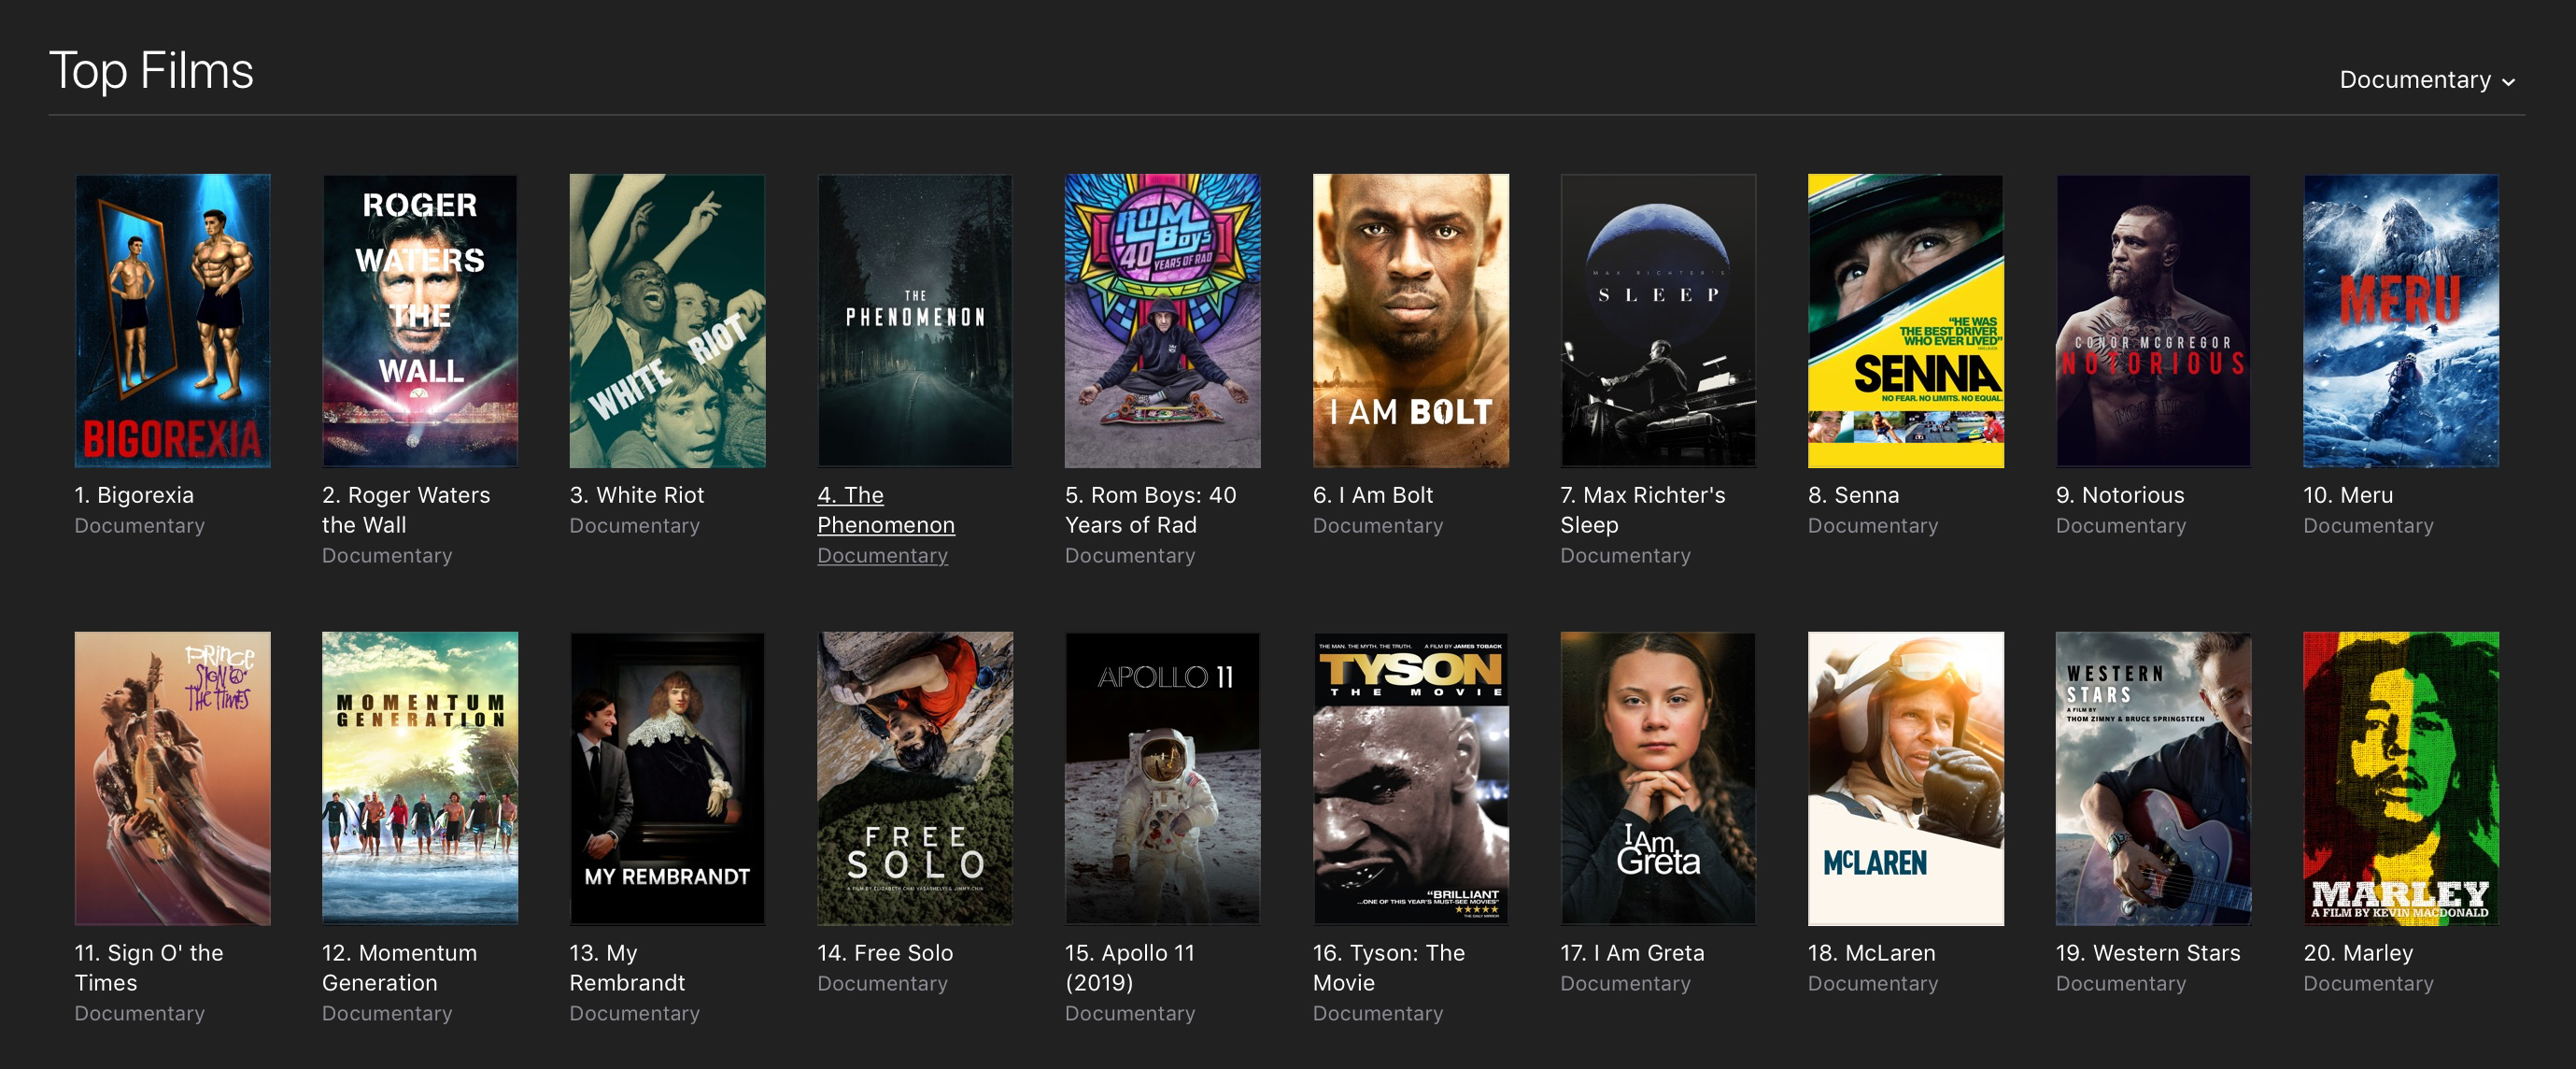 Bigorexia Number One Documentary UK iTunes